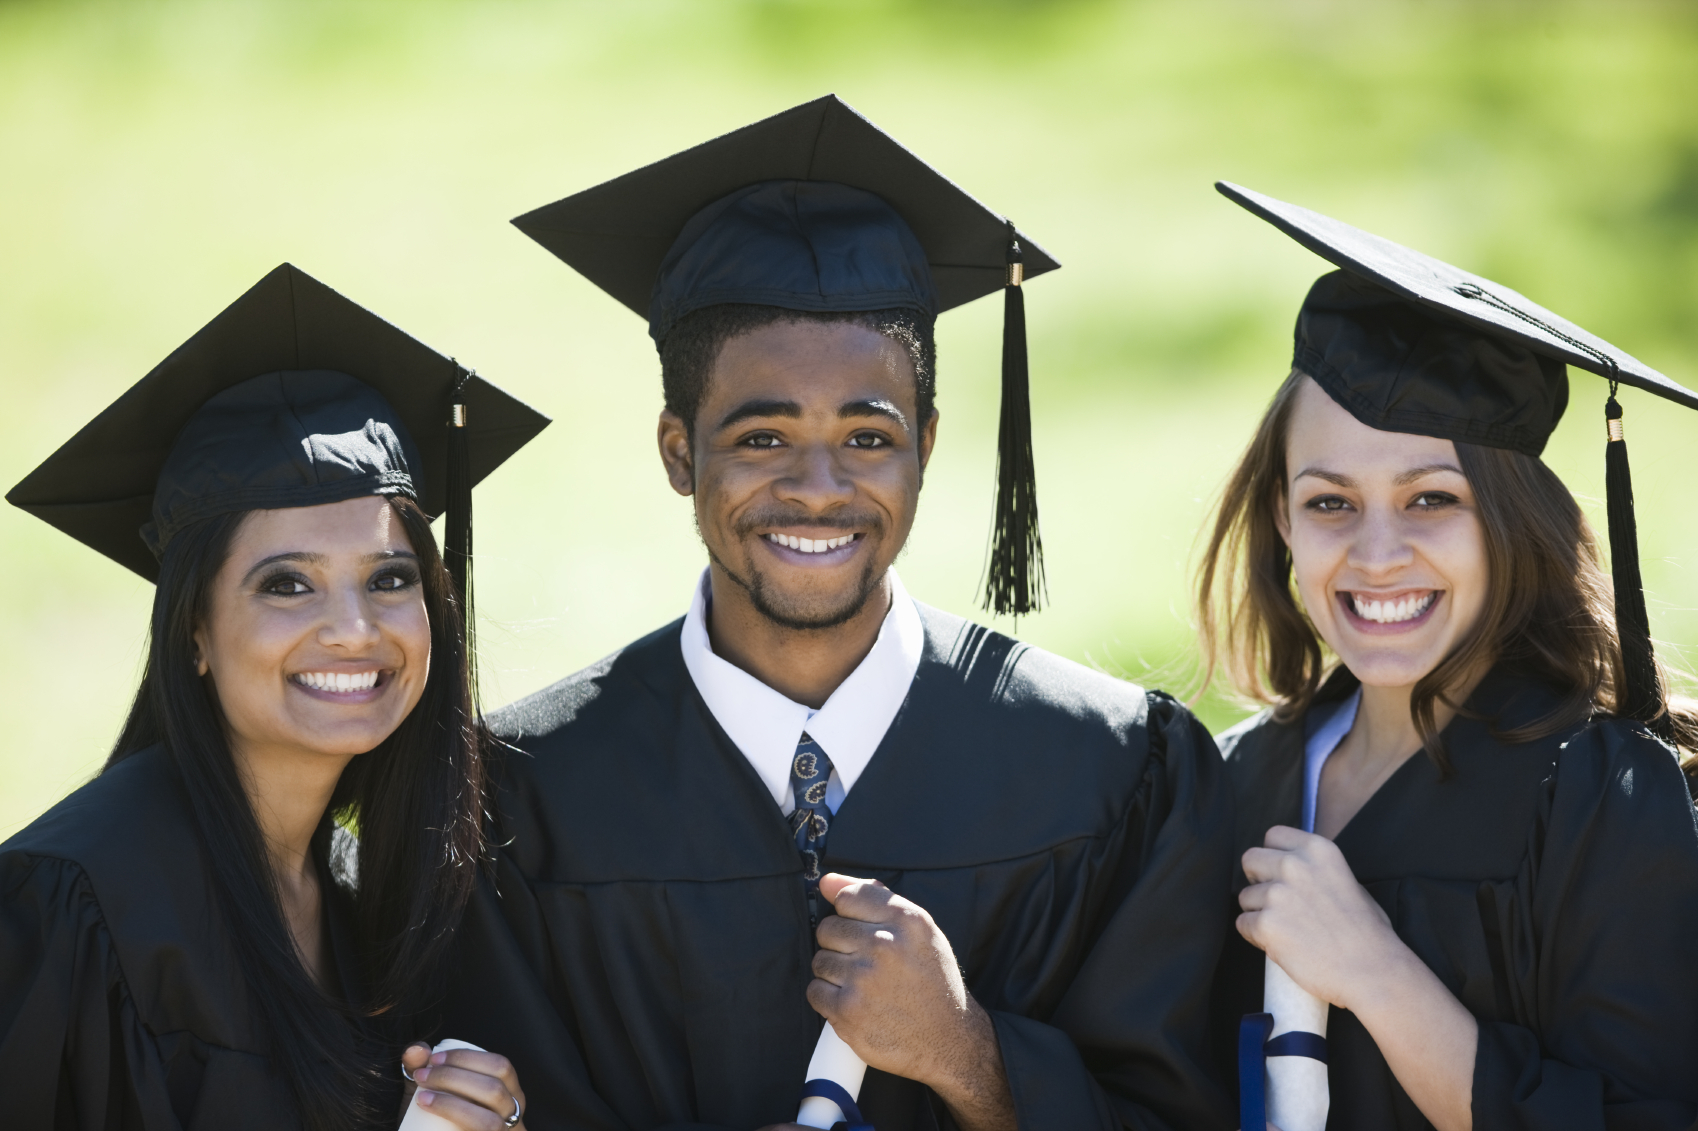 an analysis of high school graduation Unlike most editing & proofreading services, we edit for everything: grammar, spelling, punctuation, idea flow, sentence structure, & more get started now.